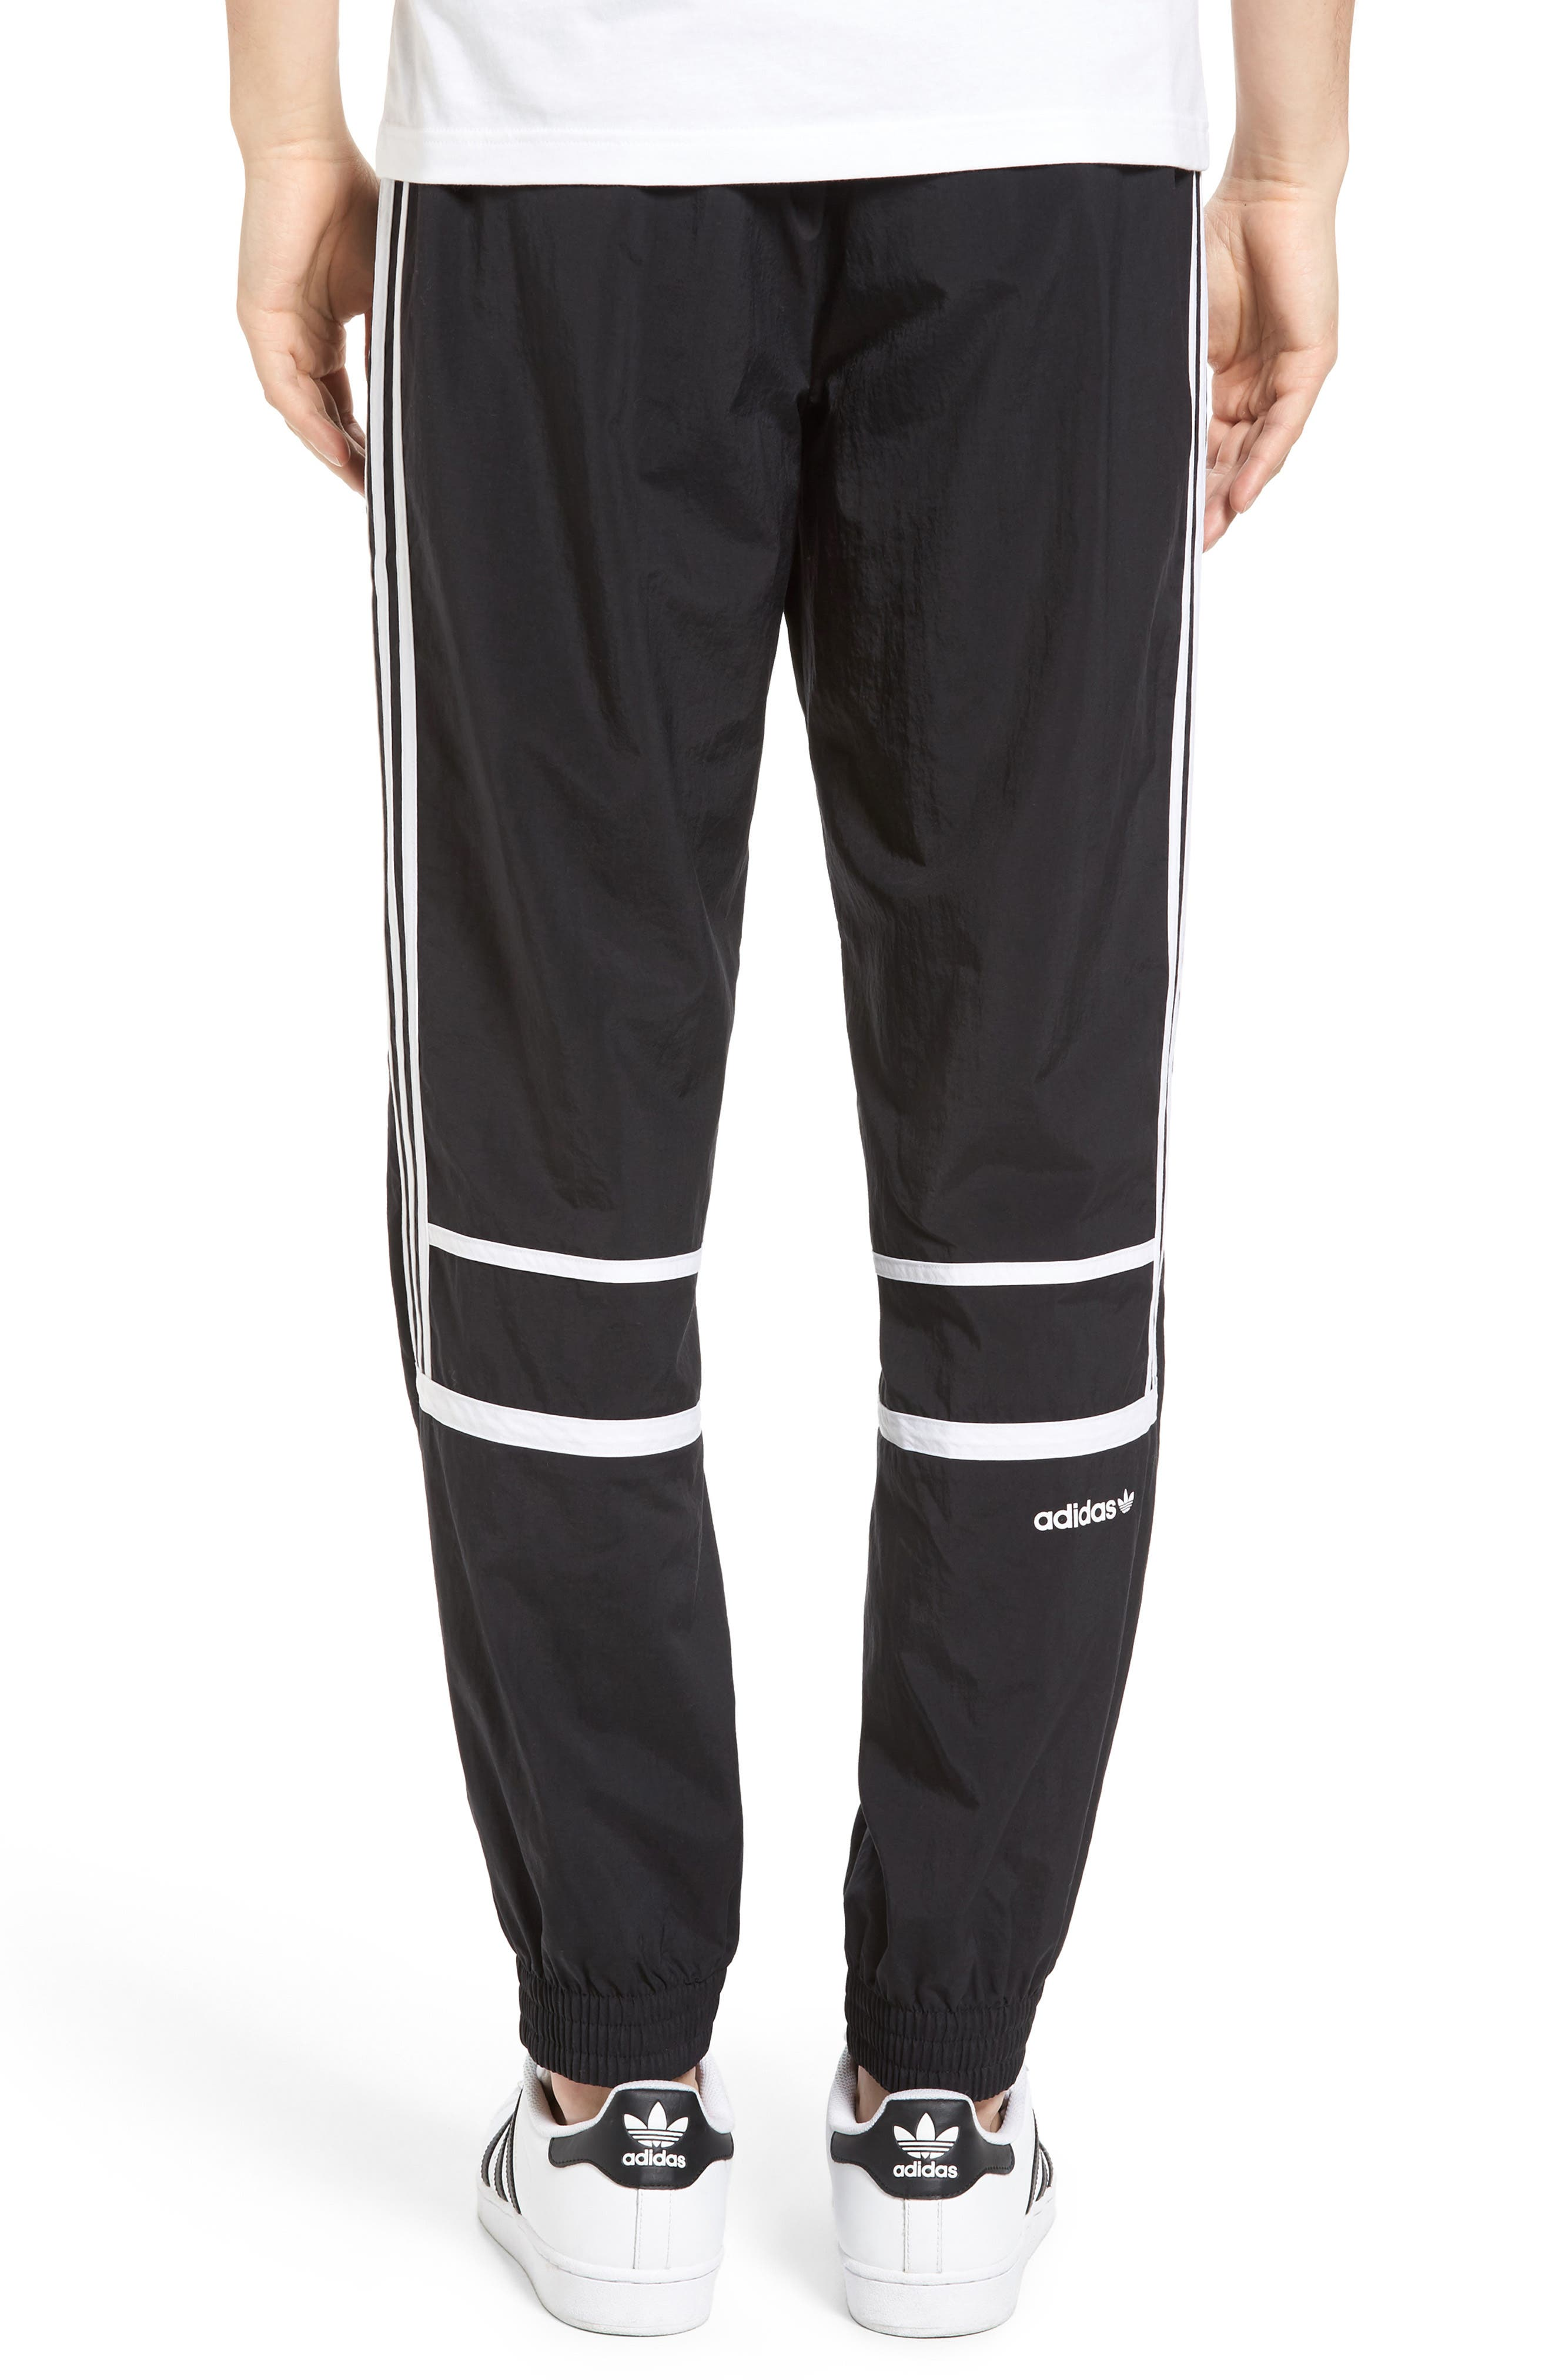 ADIDAS ORIGINALS CLR84 Track Pants, Main, color, 001